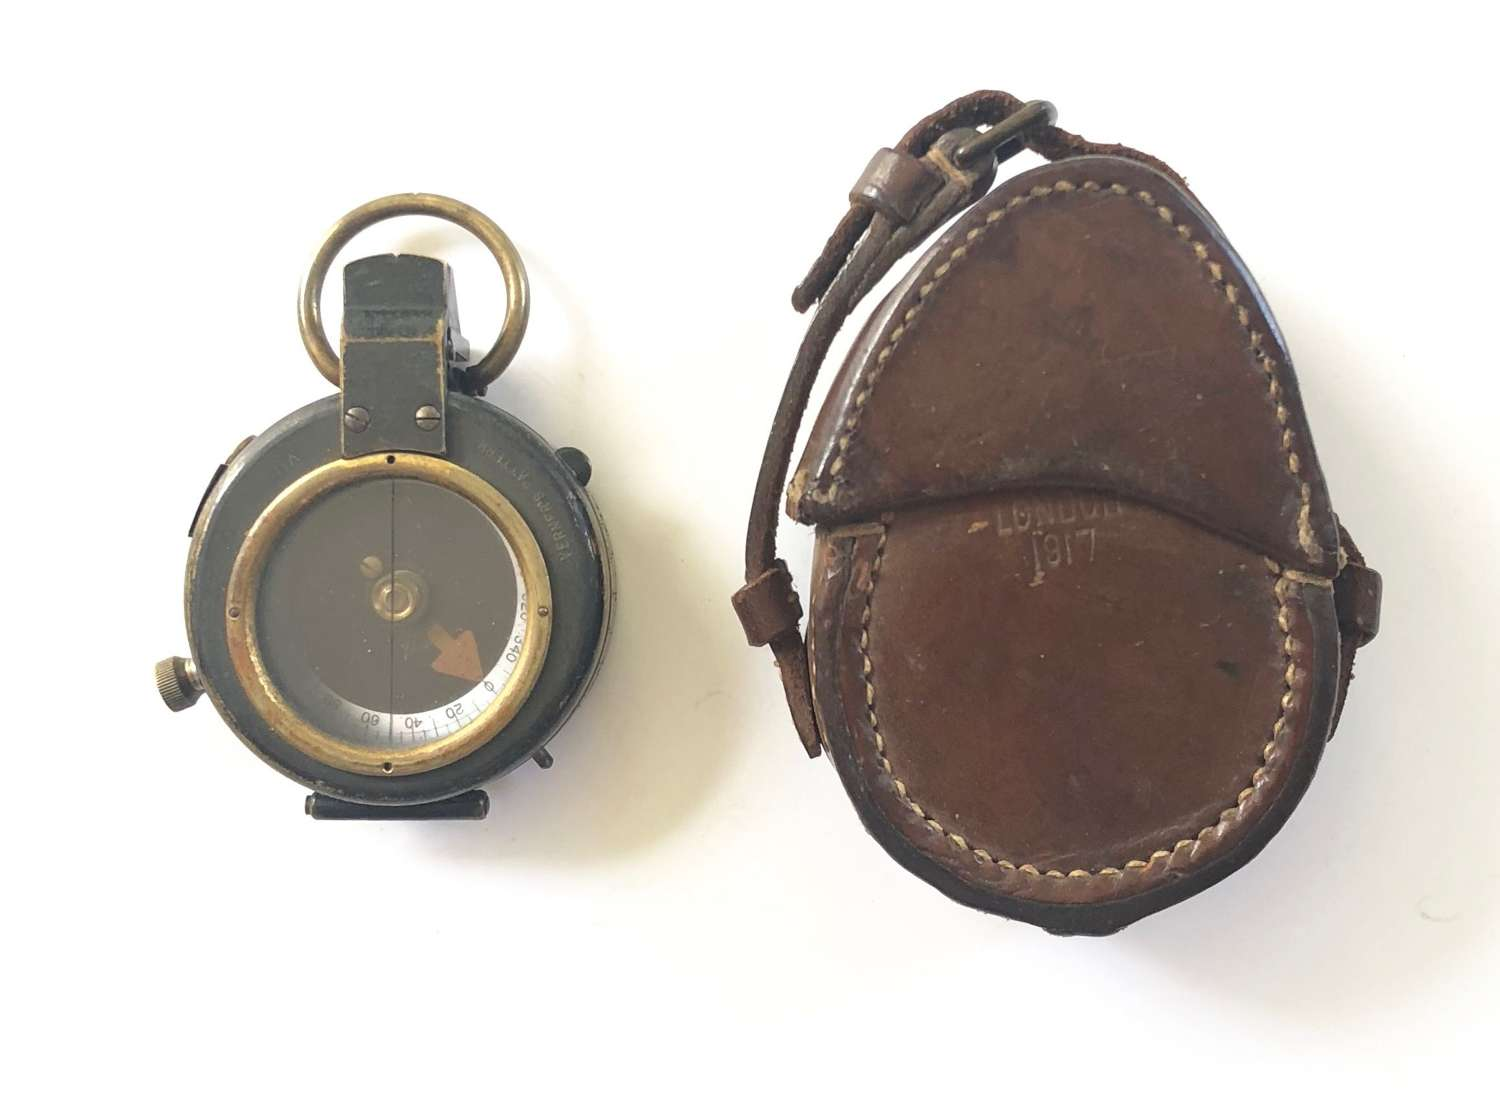 WW1 1917 Officer's Marching Compass.